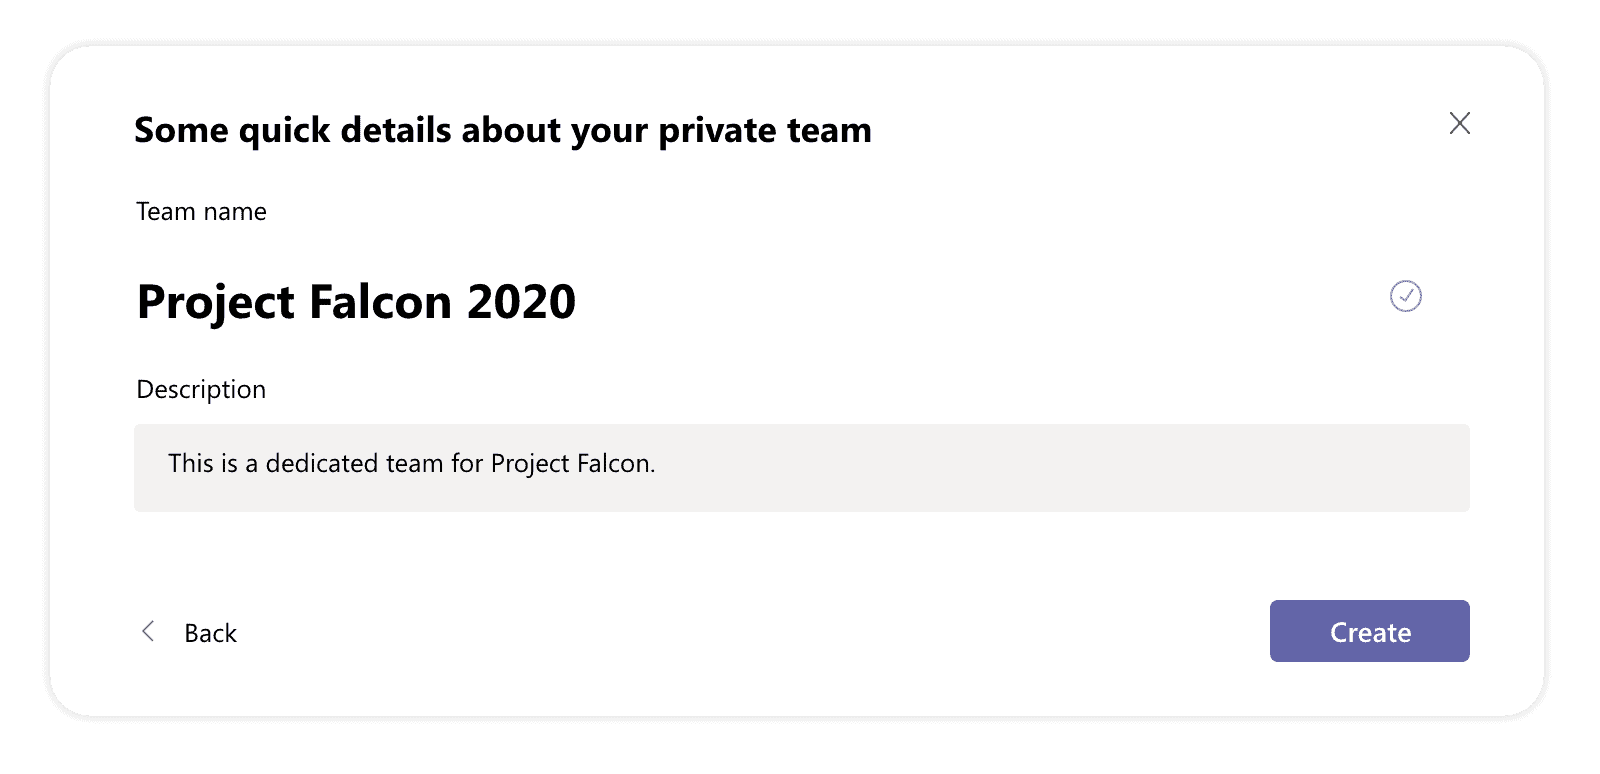 Create a Microsoft Teams team for a project